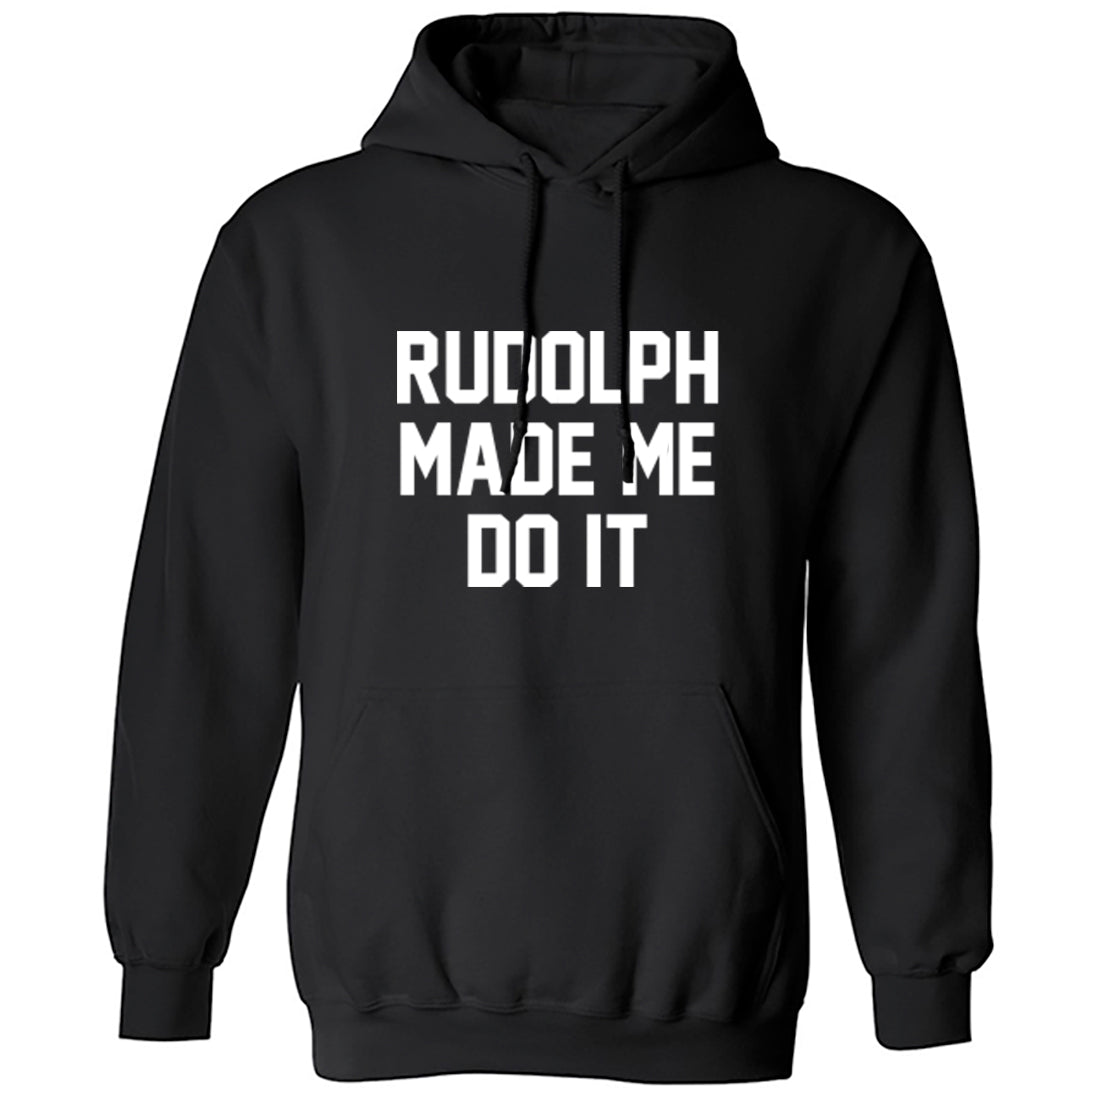 Rudolph Made Me Do It Unisex Hoodie K1375 - Illustrated Identity Ltd.